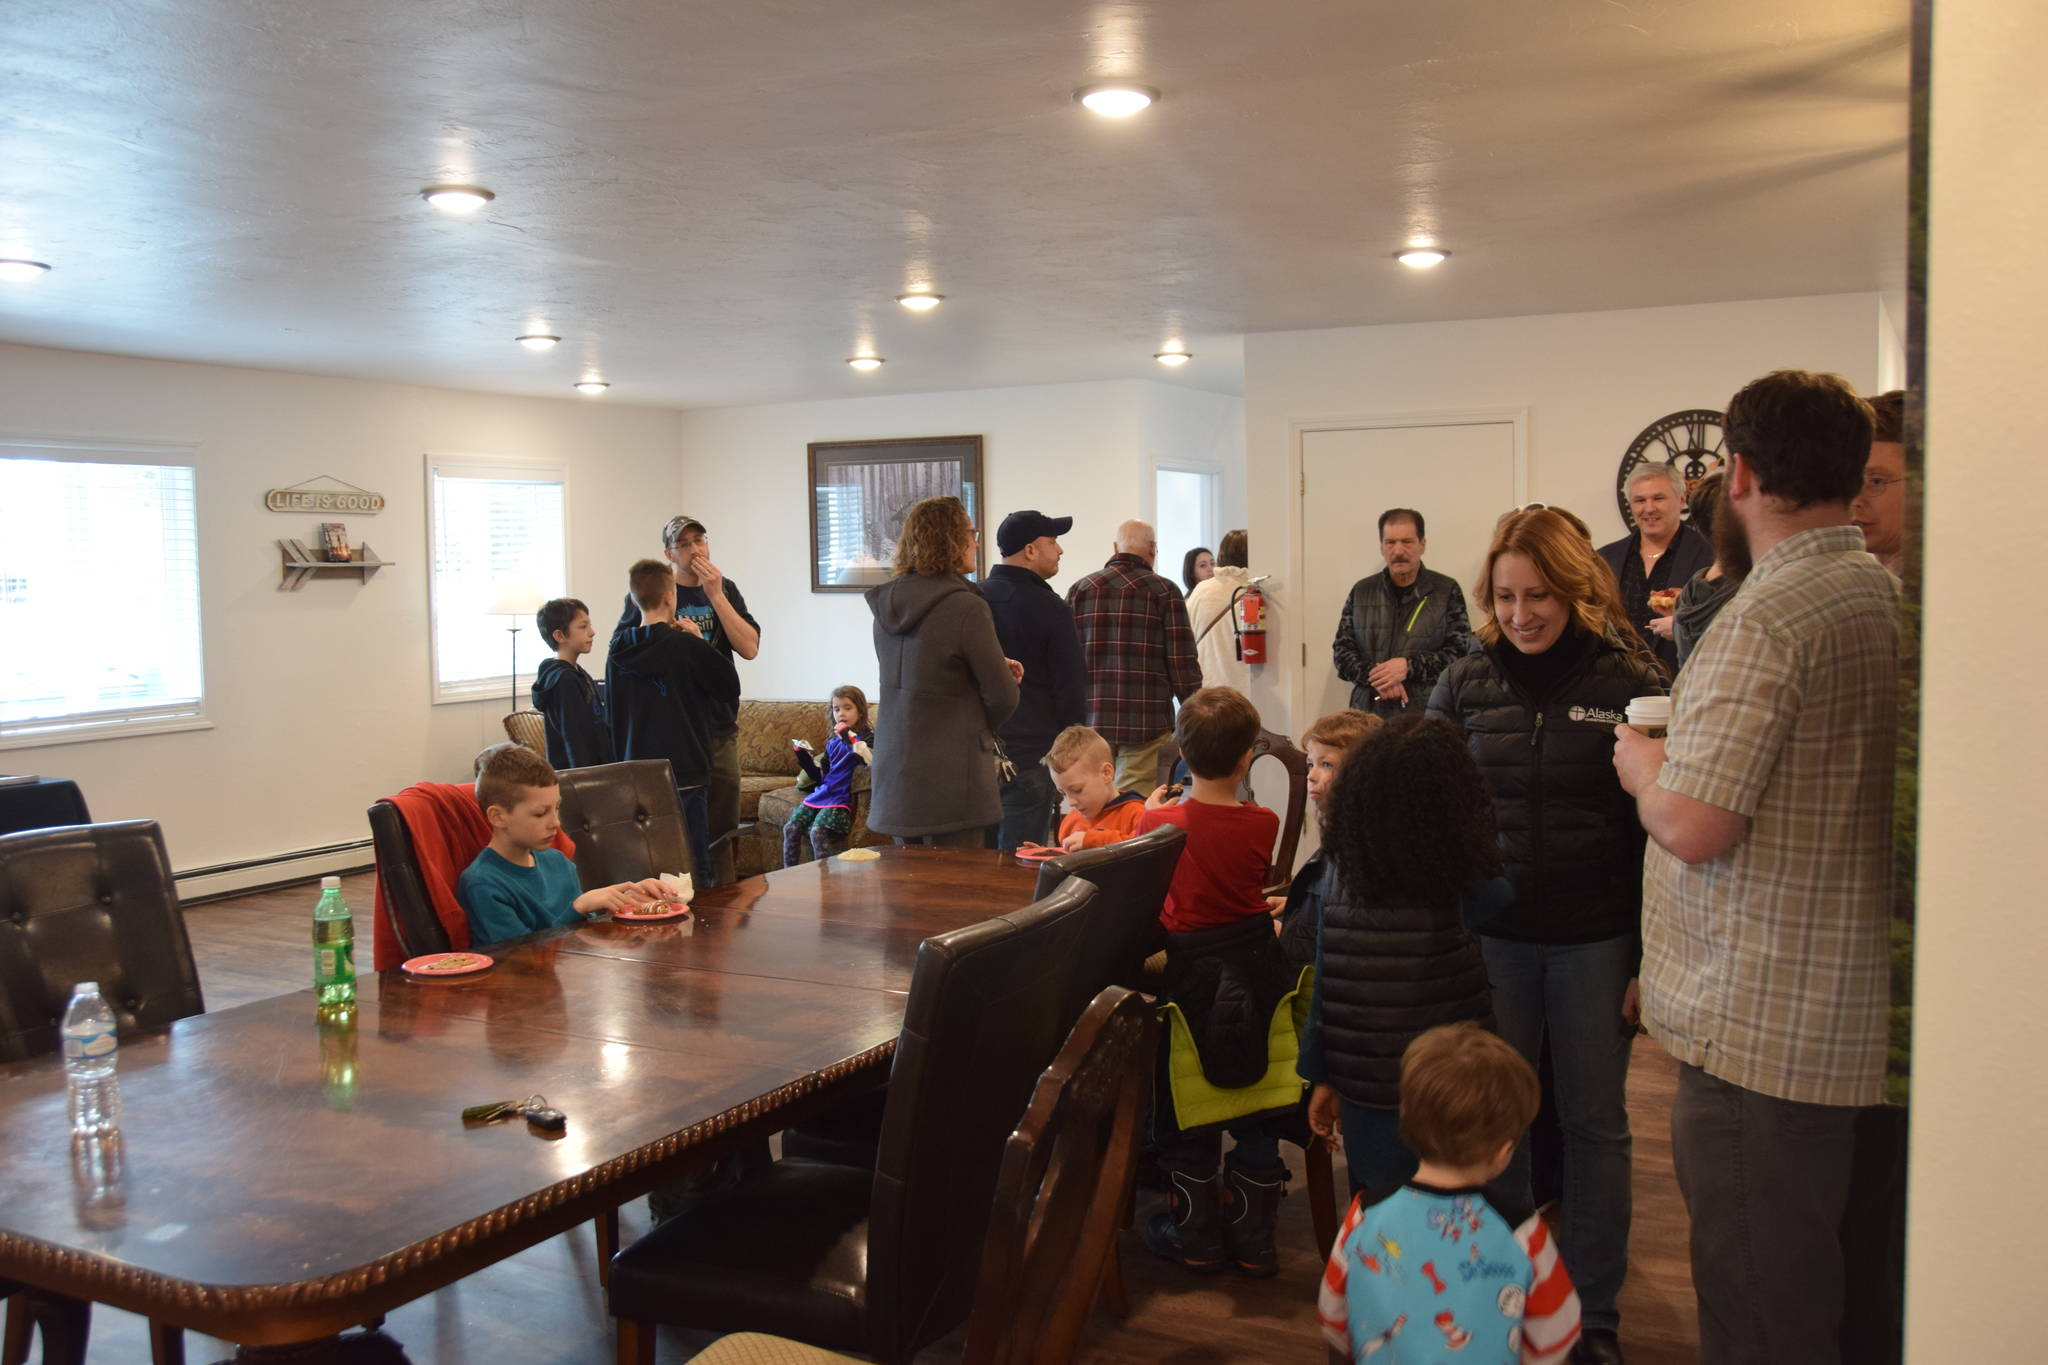 Community members show their support for the opening of Freedom House's men's residence in Soldotna, Alaska, on March 24, 2019. (Photo by Brian Mazurek/Peninsula Clarion)